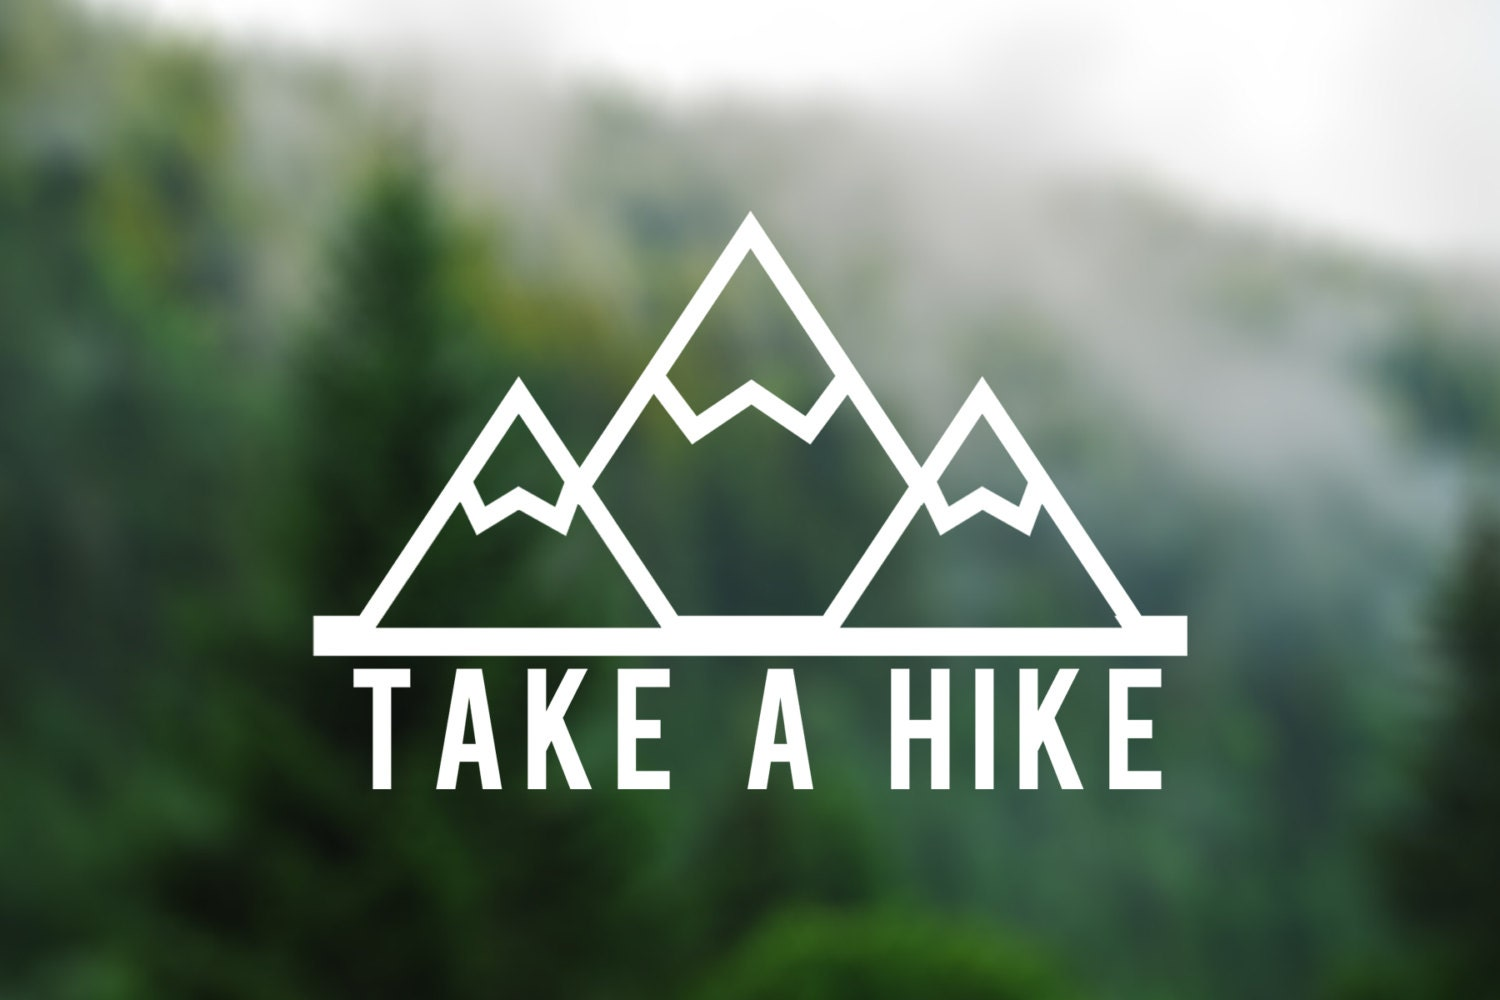 Decal Take A Hike Vinyl Decal Car Window Decal Laptop